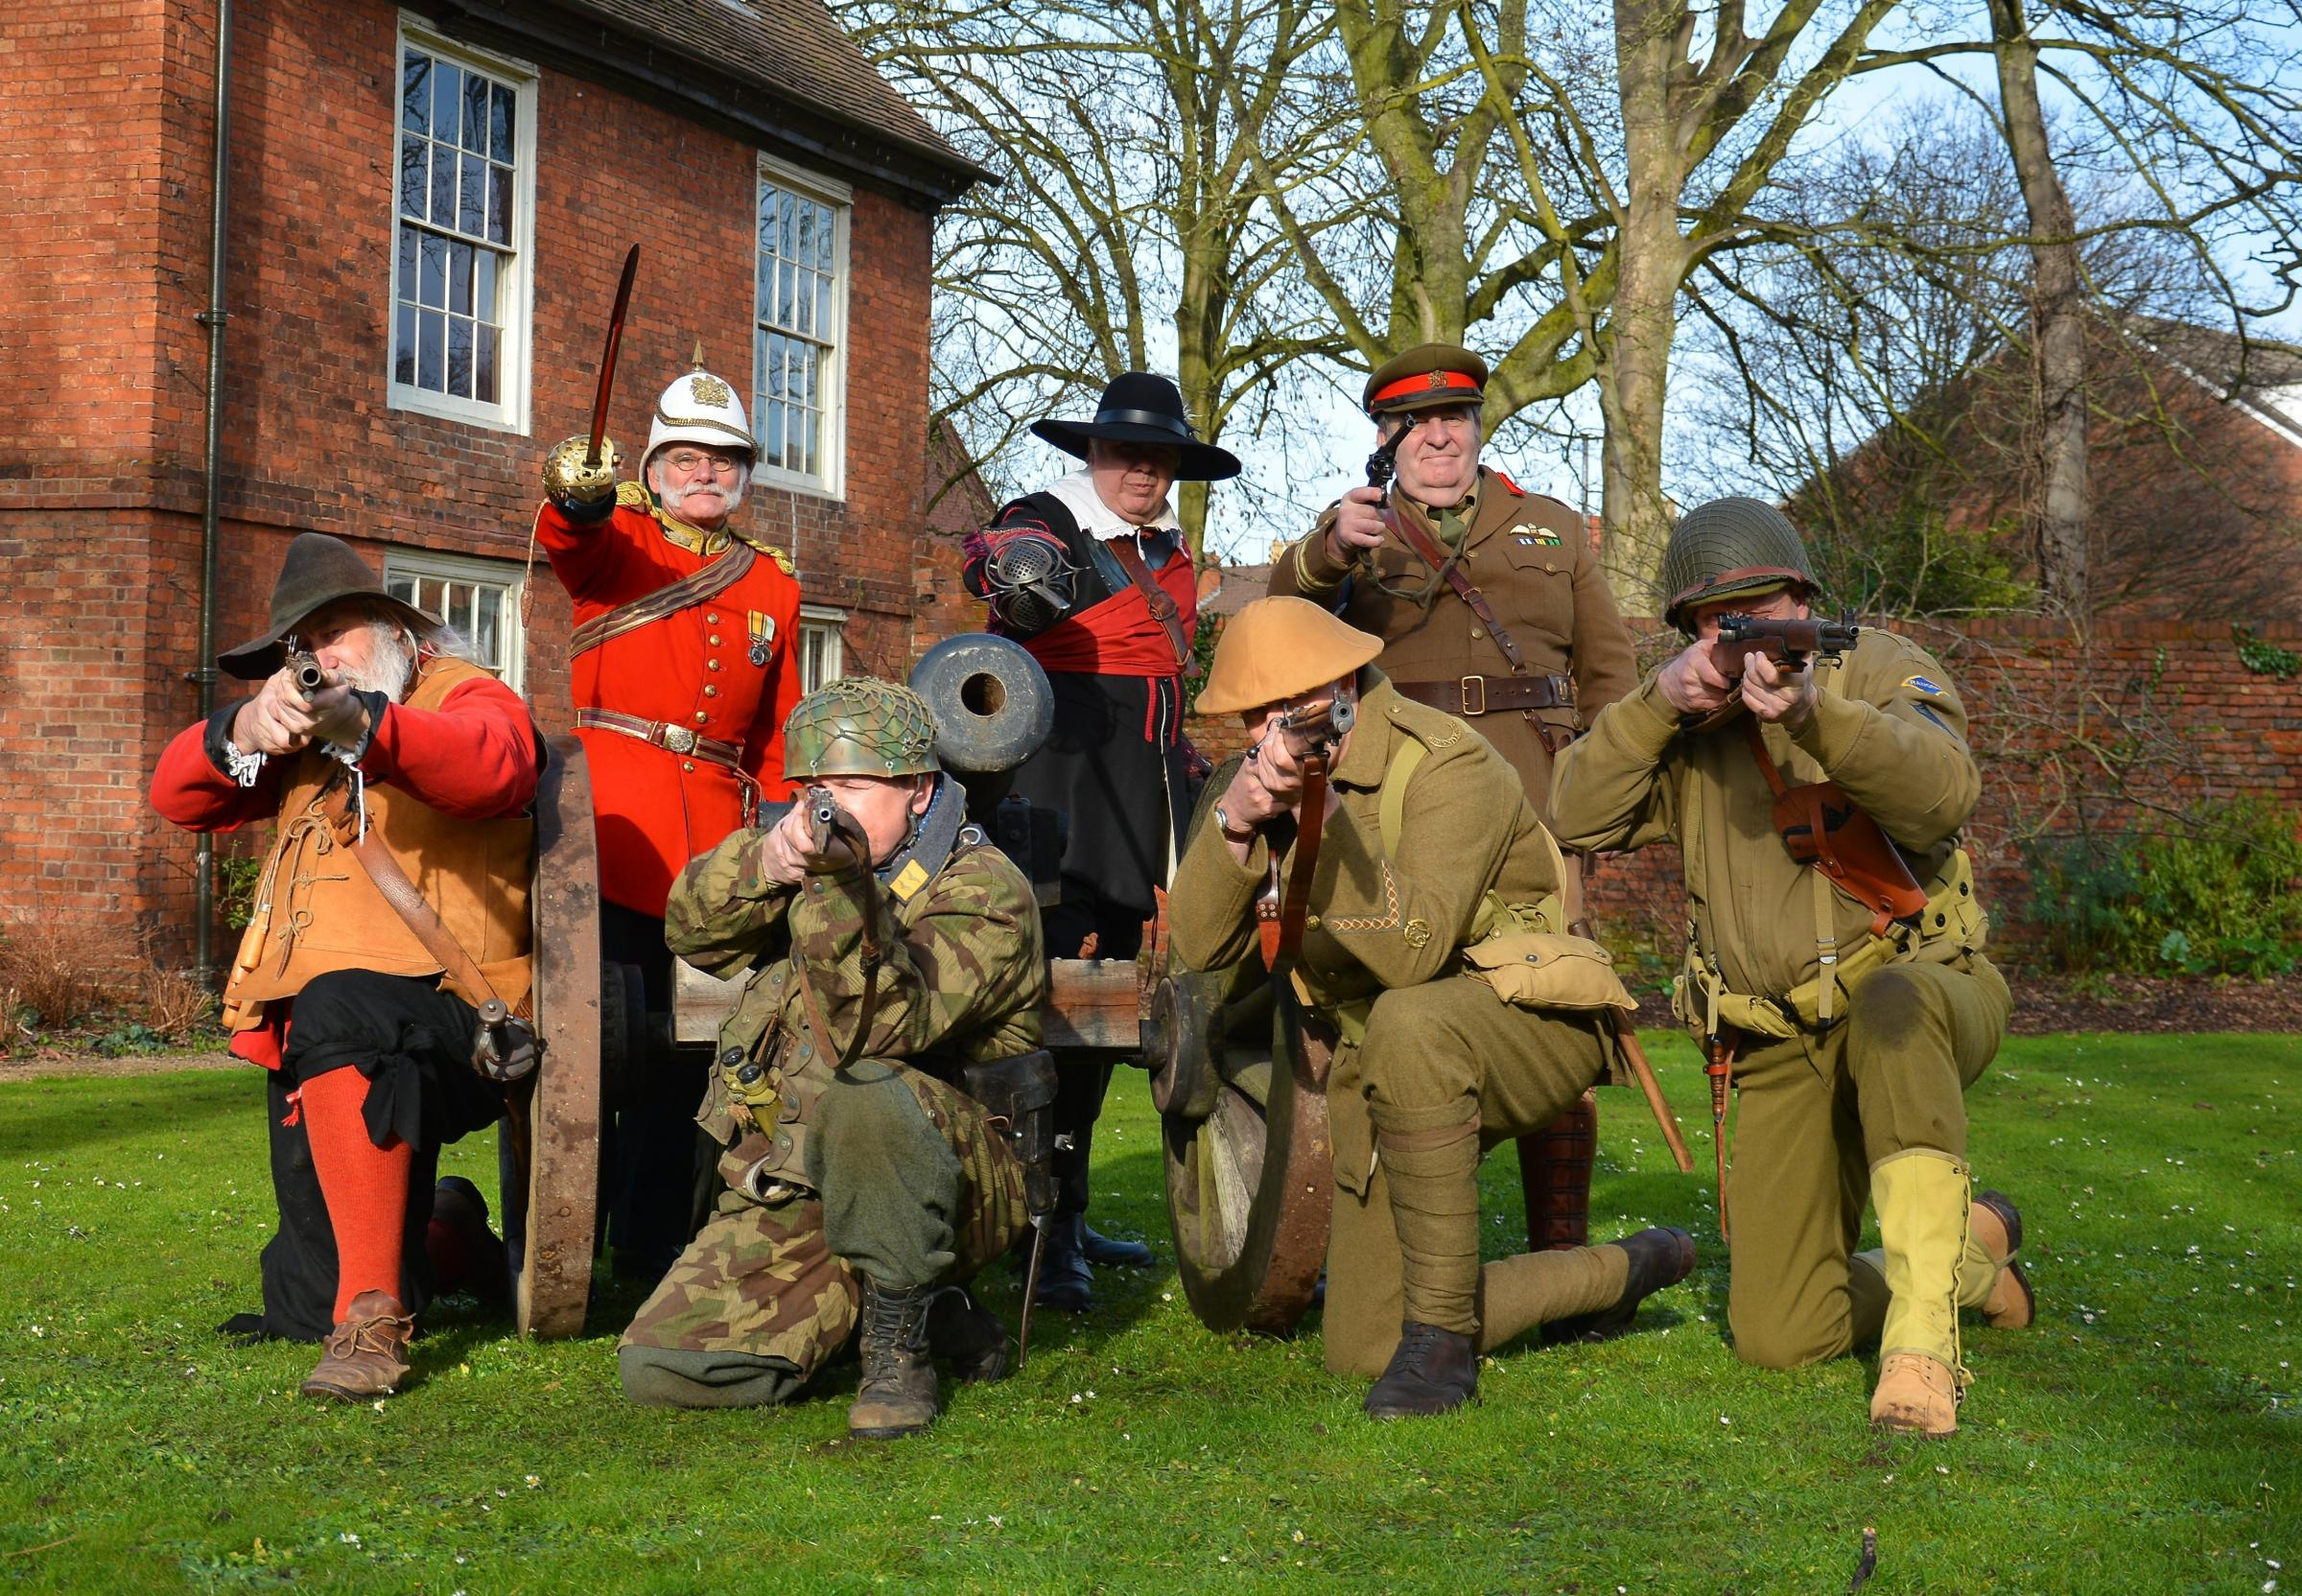 The Worcester Re-enactors will be in CrownGate this weekend entertaining shoppers.